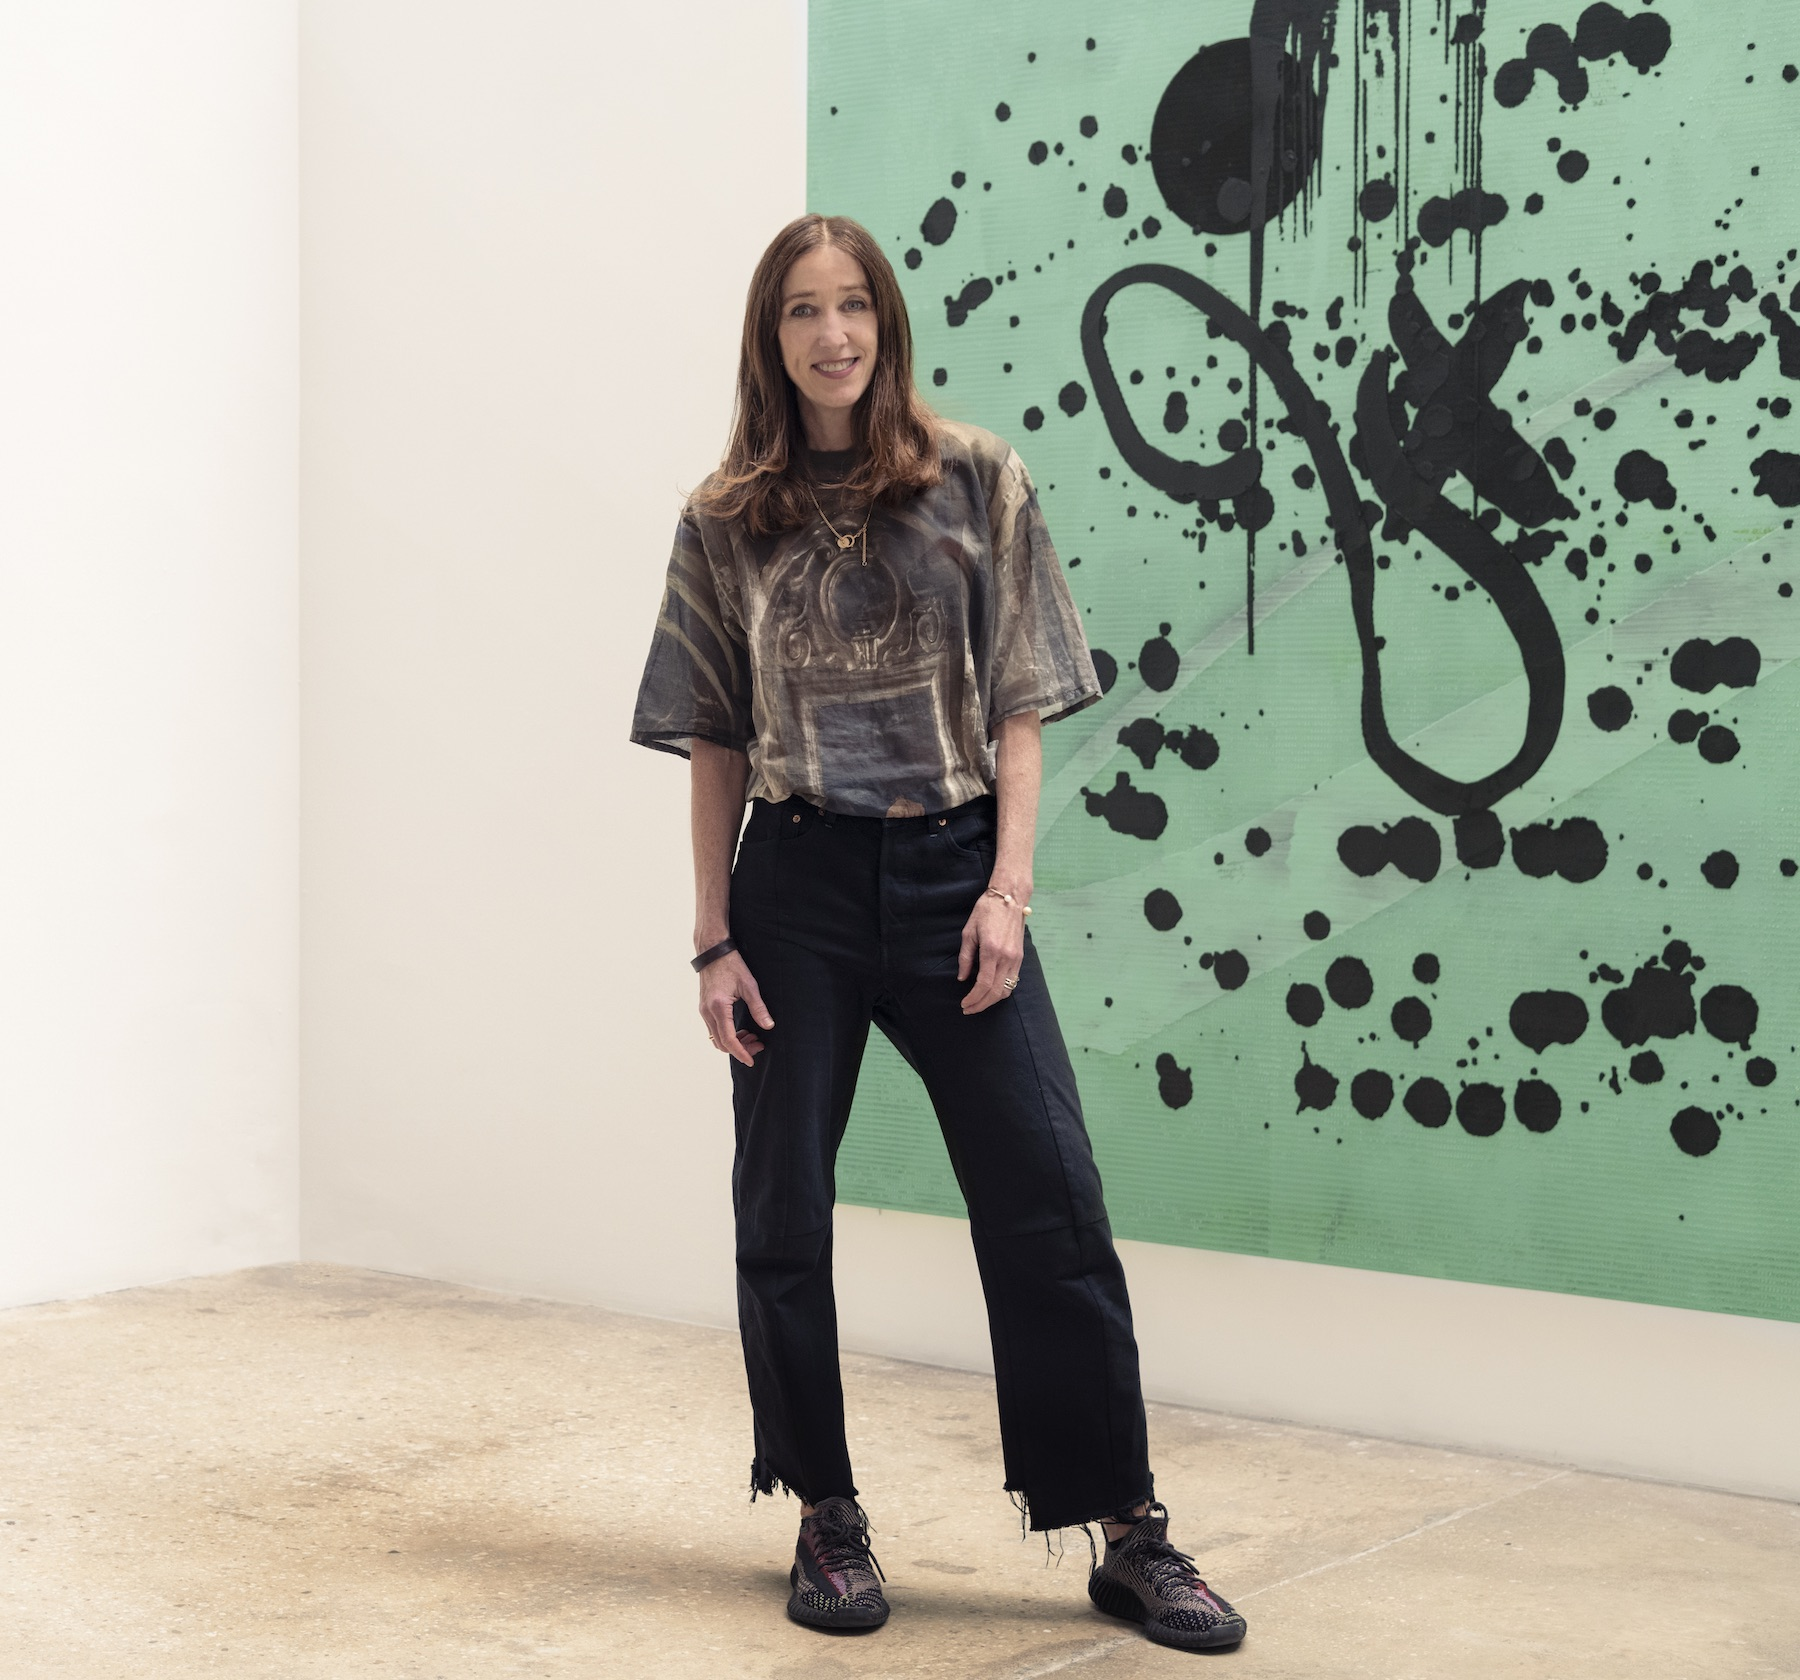 Female art gallerist standing in front of abstract painting